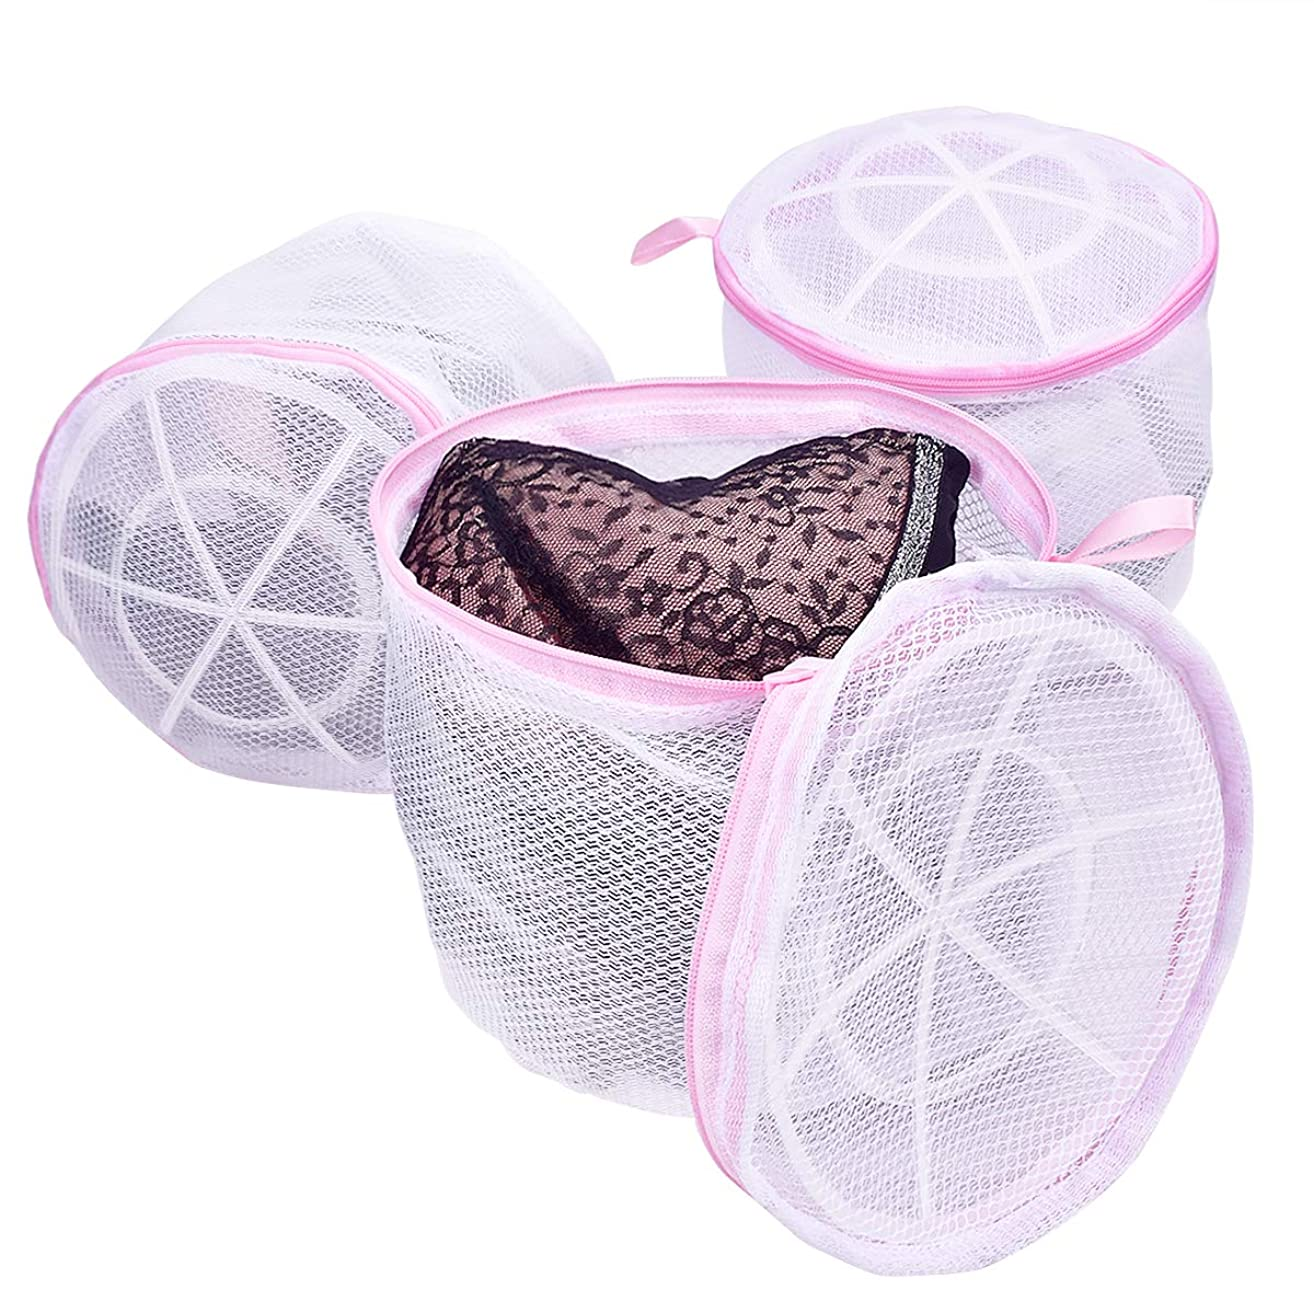 Scientific Bra Laundry Bags for Bras, TANTAI Healthy Women Wash Mesh Bag for Delicates - Double Roof Bracket Structure Design - For Adult and Baby Lingerie ,Knickers,Socks and Underwear ( 3 Pack )